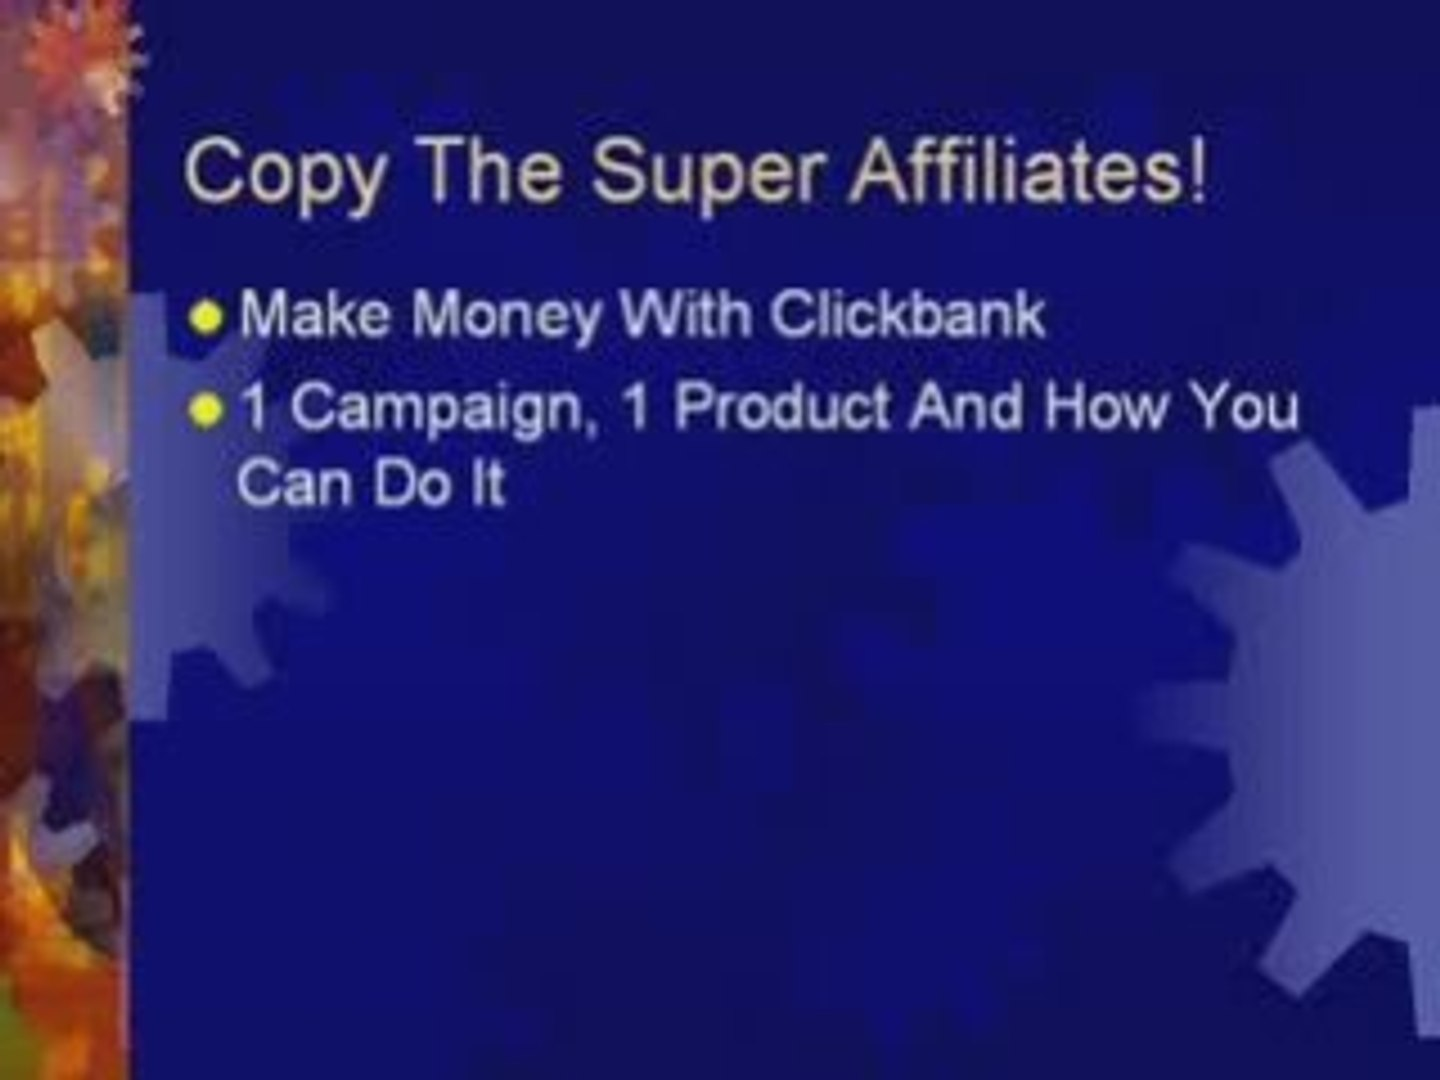 Make Money With Clickbank - Super Affiliates Clickbank Guide